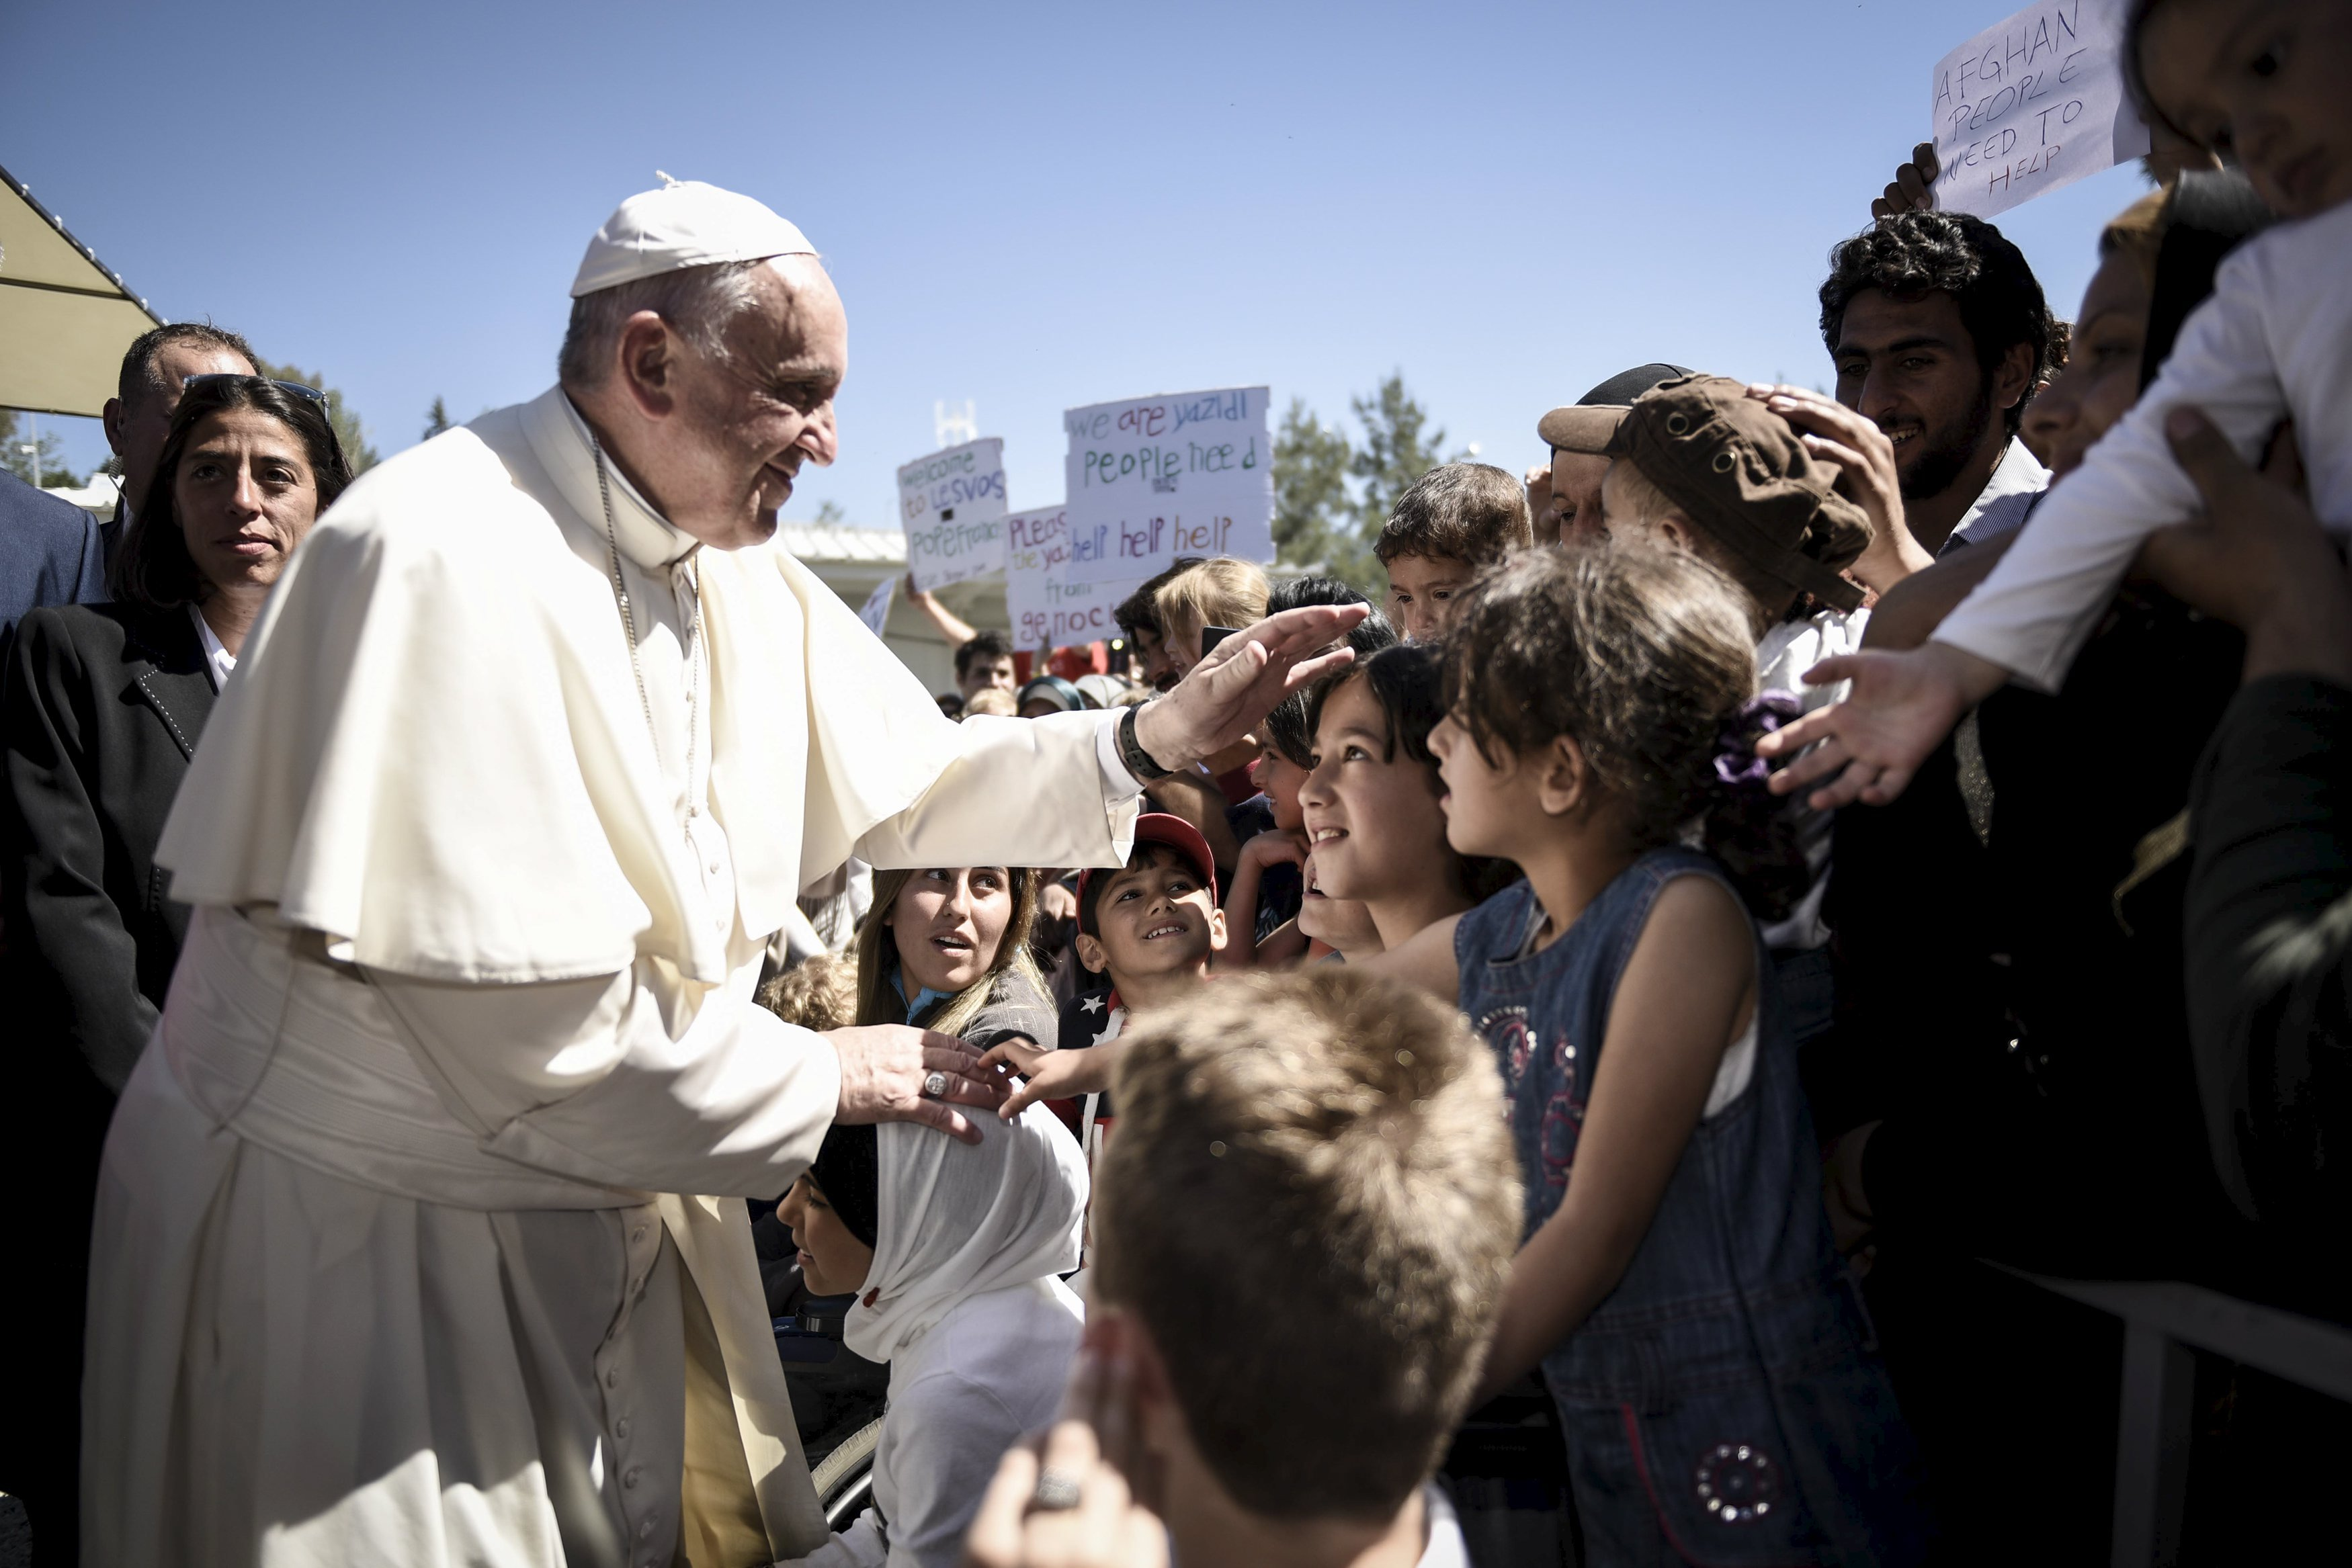 Pope Francis greets migrants and refugees at Moria refugee camp near the port of Mytilene, on the Greek island of Lesbos on April 16, 2016.